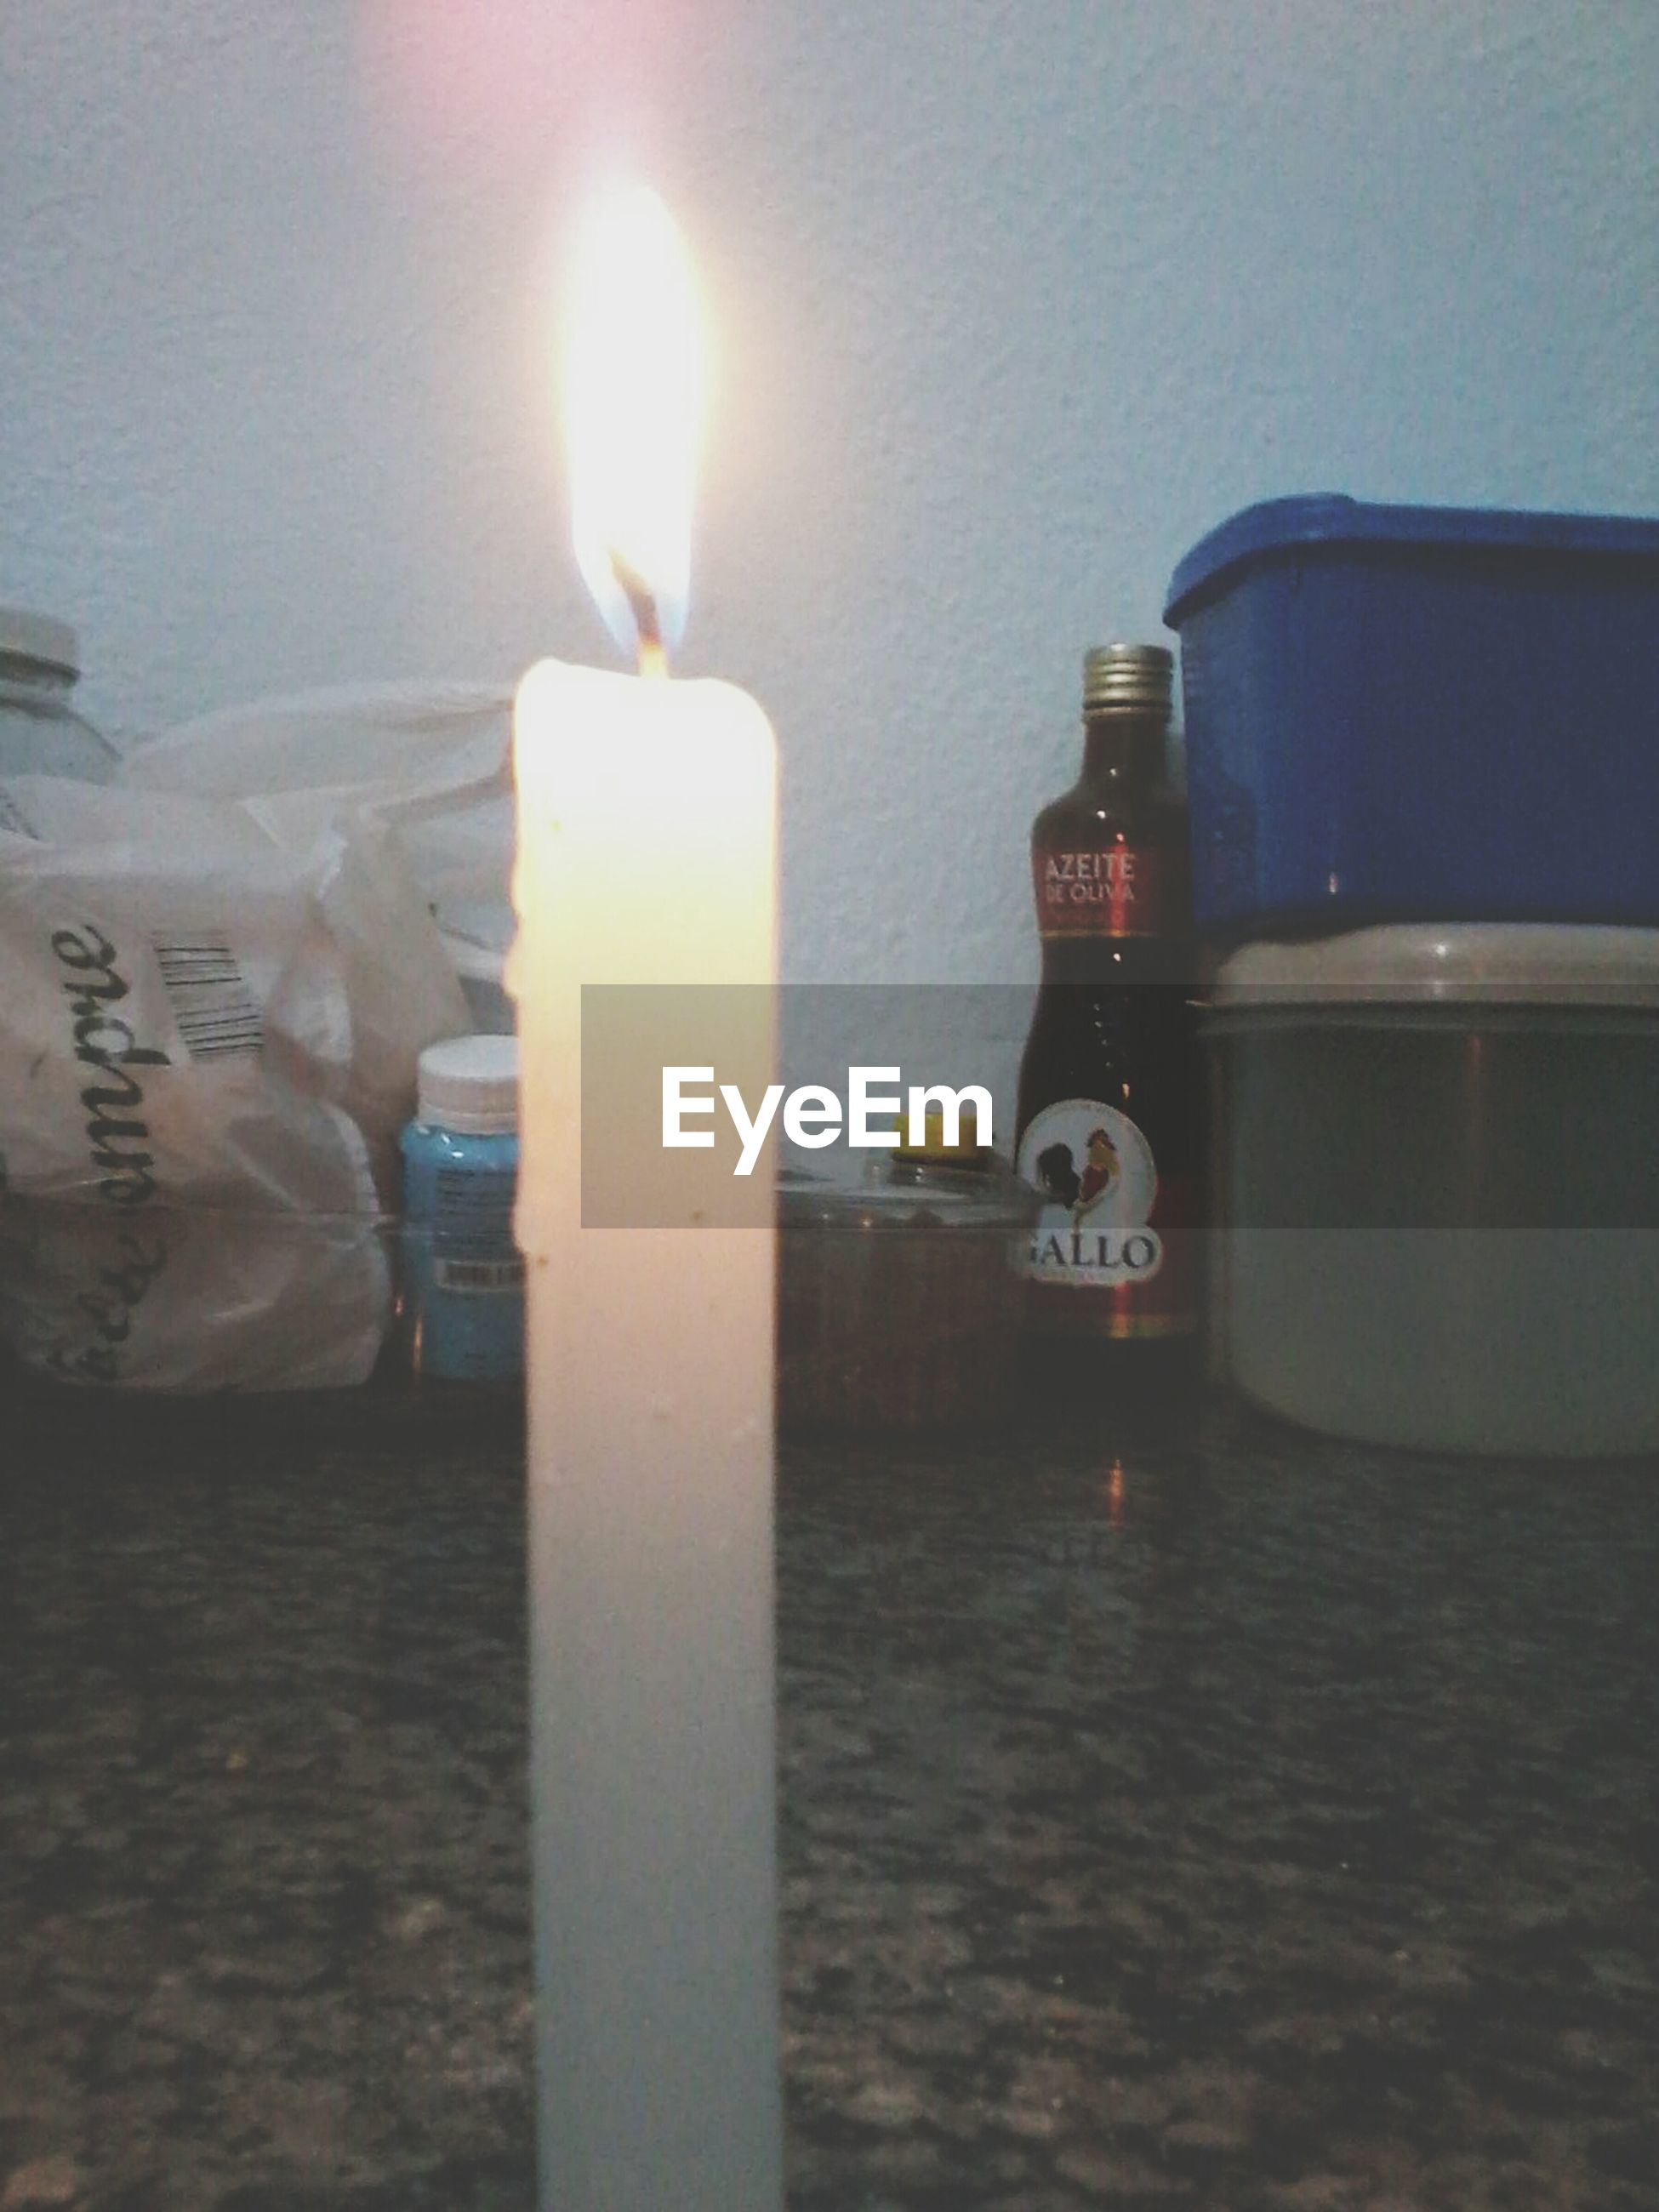 indoors, flame, burning, candle, heat - temperature, fire - natural phenomenon, close-up, still life, table, glowing, focus on foreground, illuminated, no people, candlelight, bottle, lit, selective focus, wood - material, reflection, fire